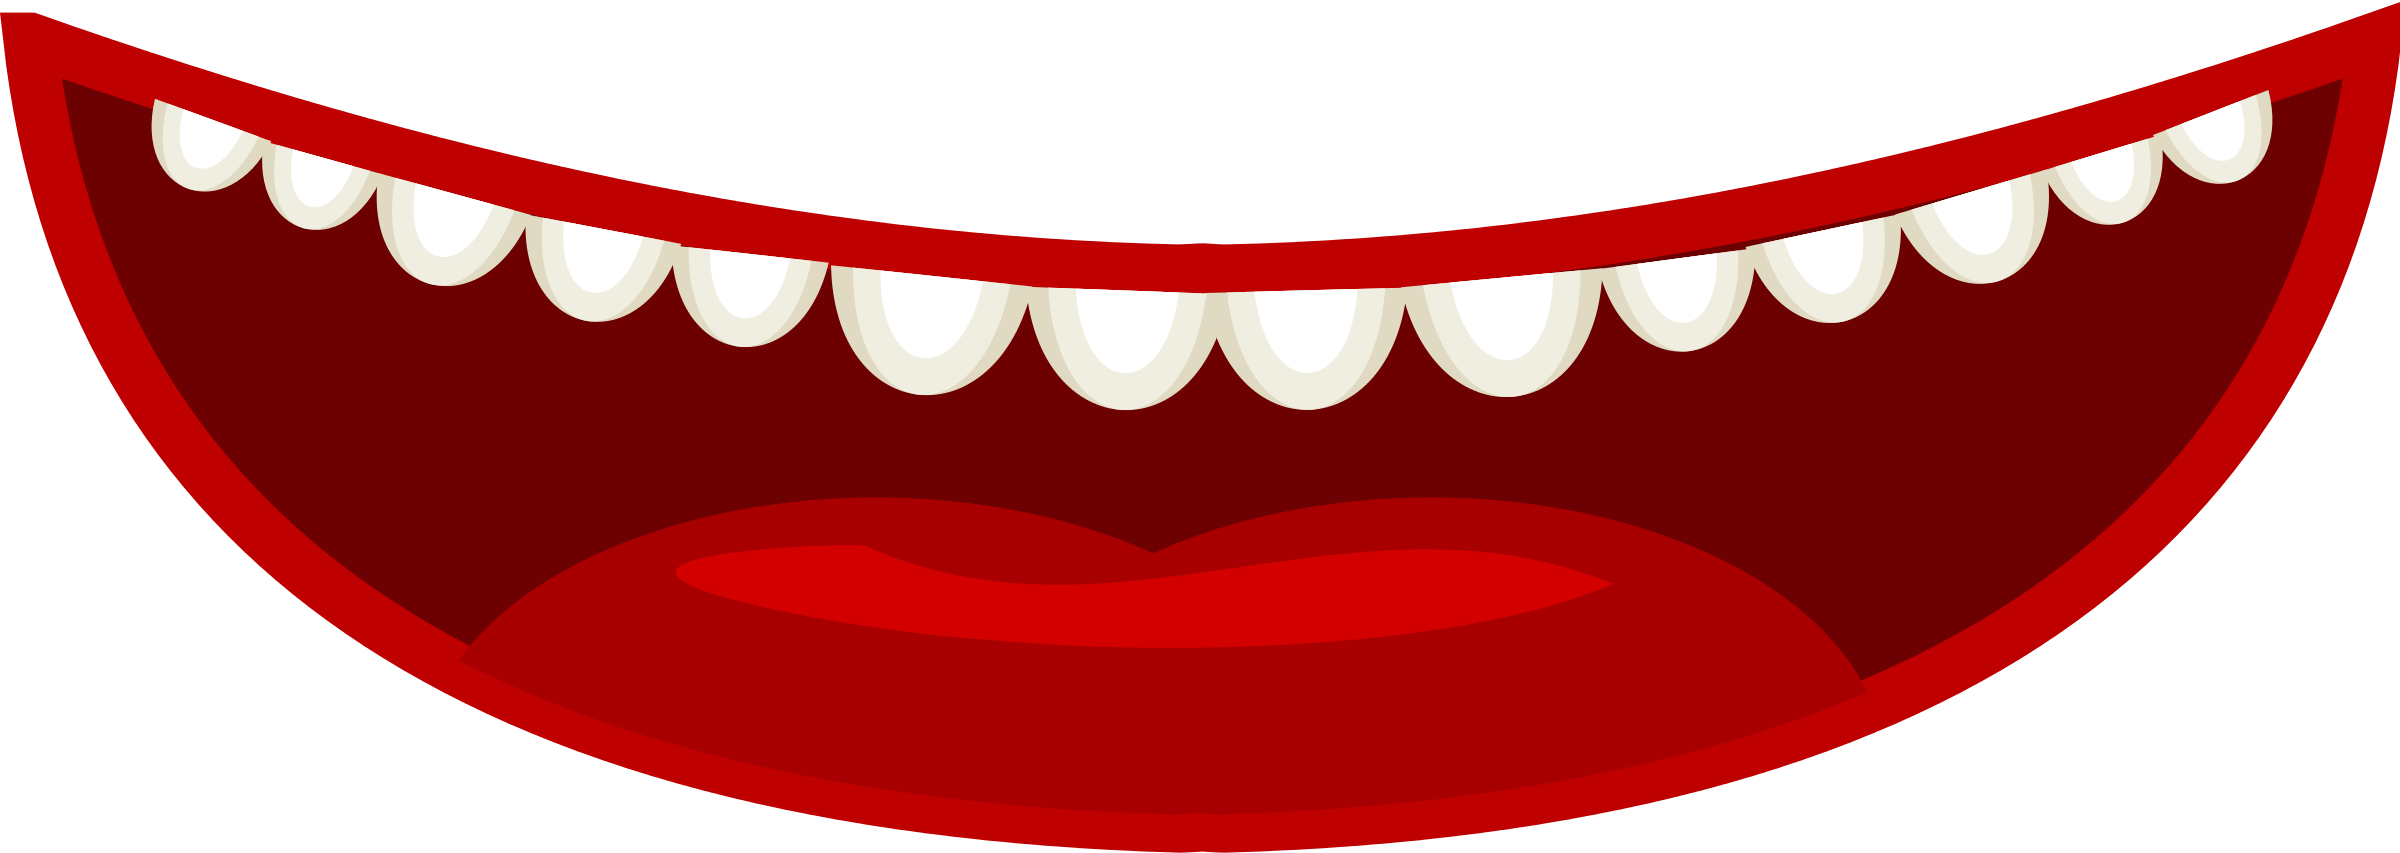 Hippo clipart big tooth. Mouth no teeth clip